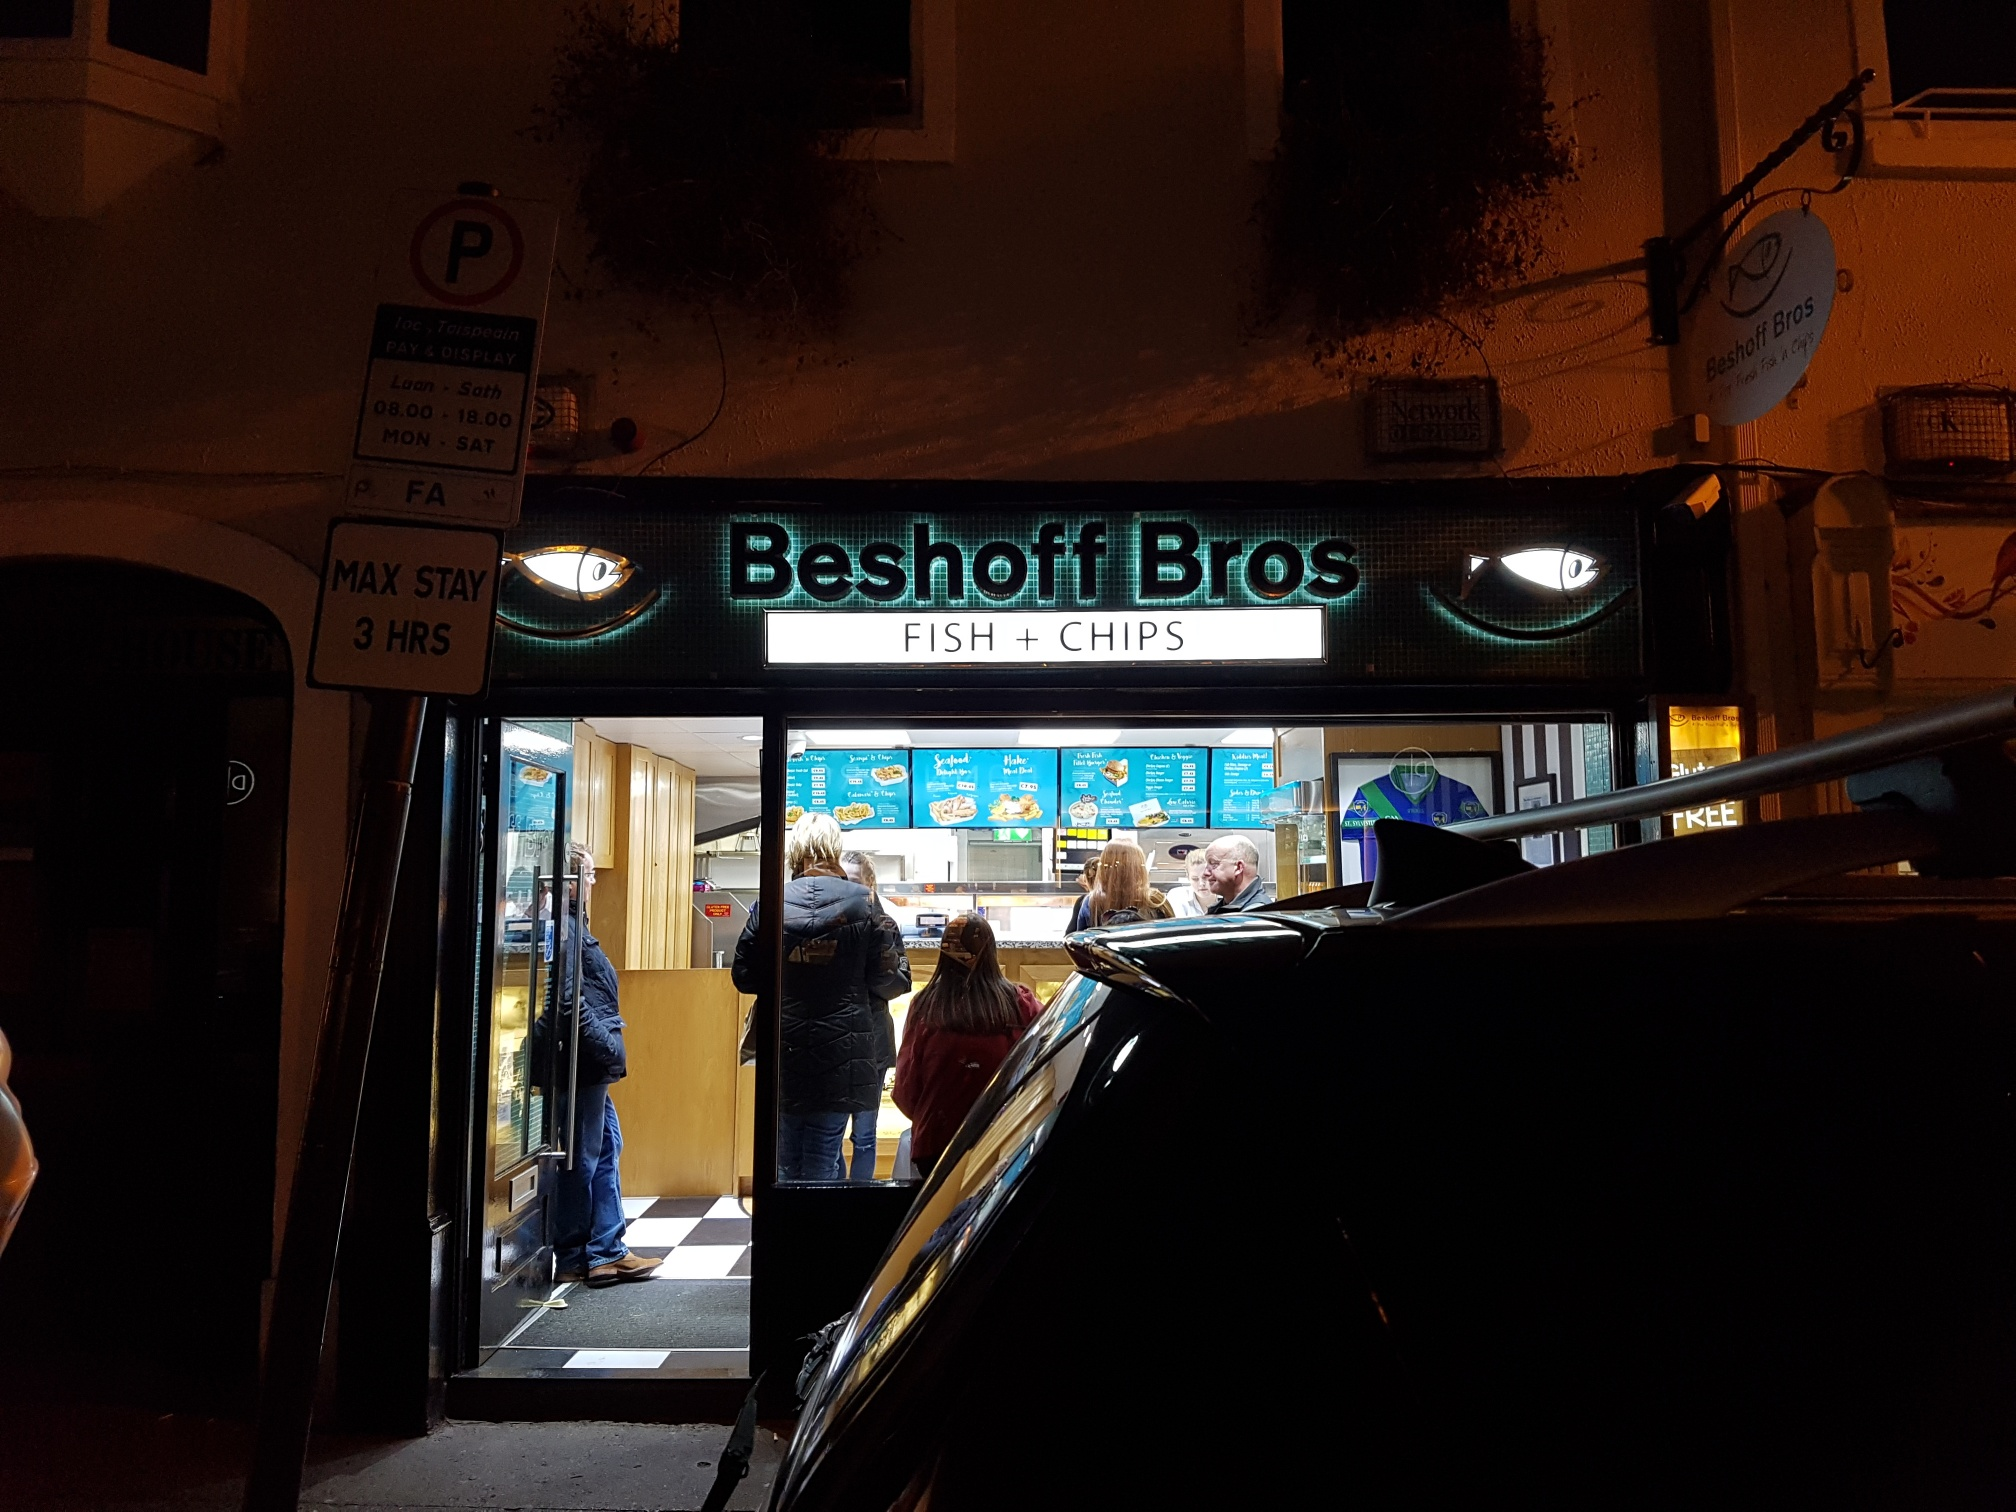 3D Illuminated Shop Front Signage, Beshofs